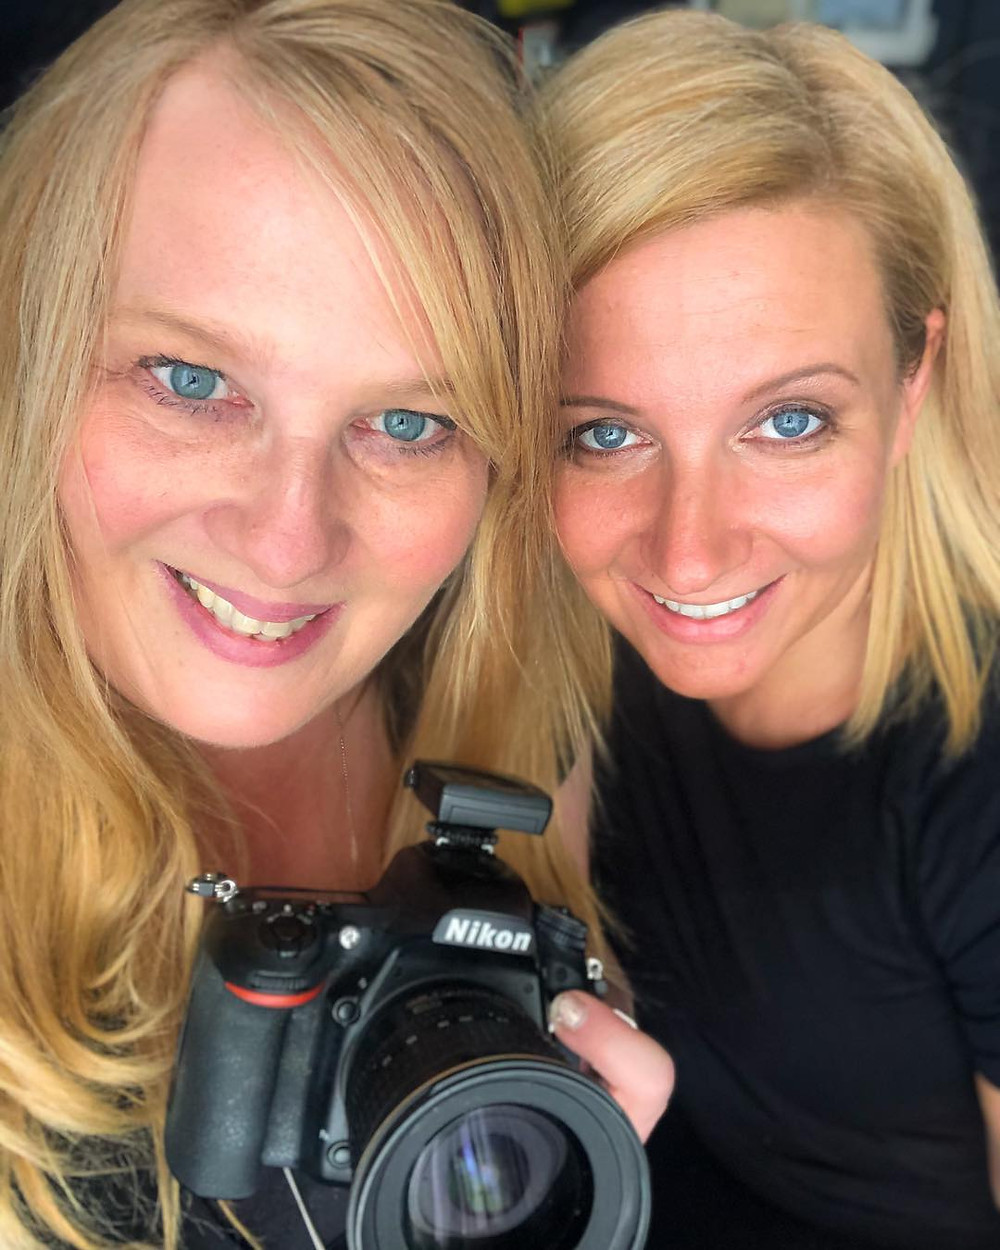 Selfie of Jennifer Heffner, Photographer with her camera and Meg Donnelly, Licensed Massage Therapist